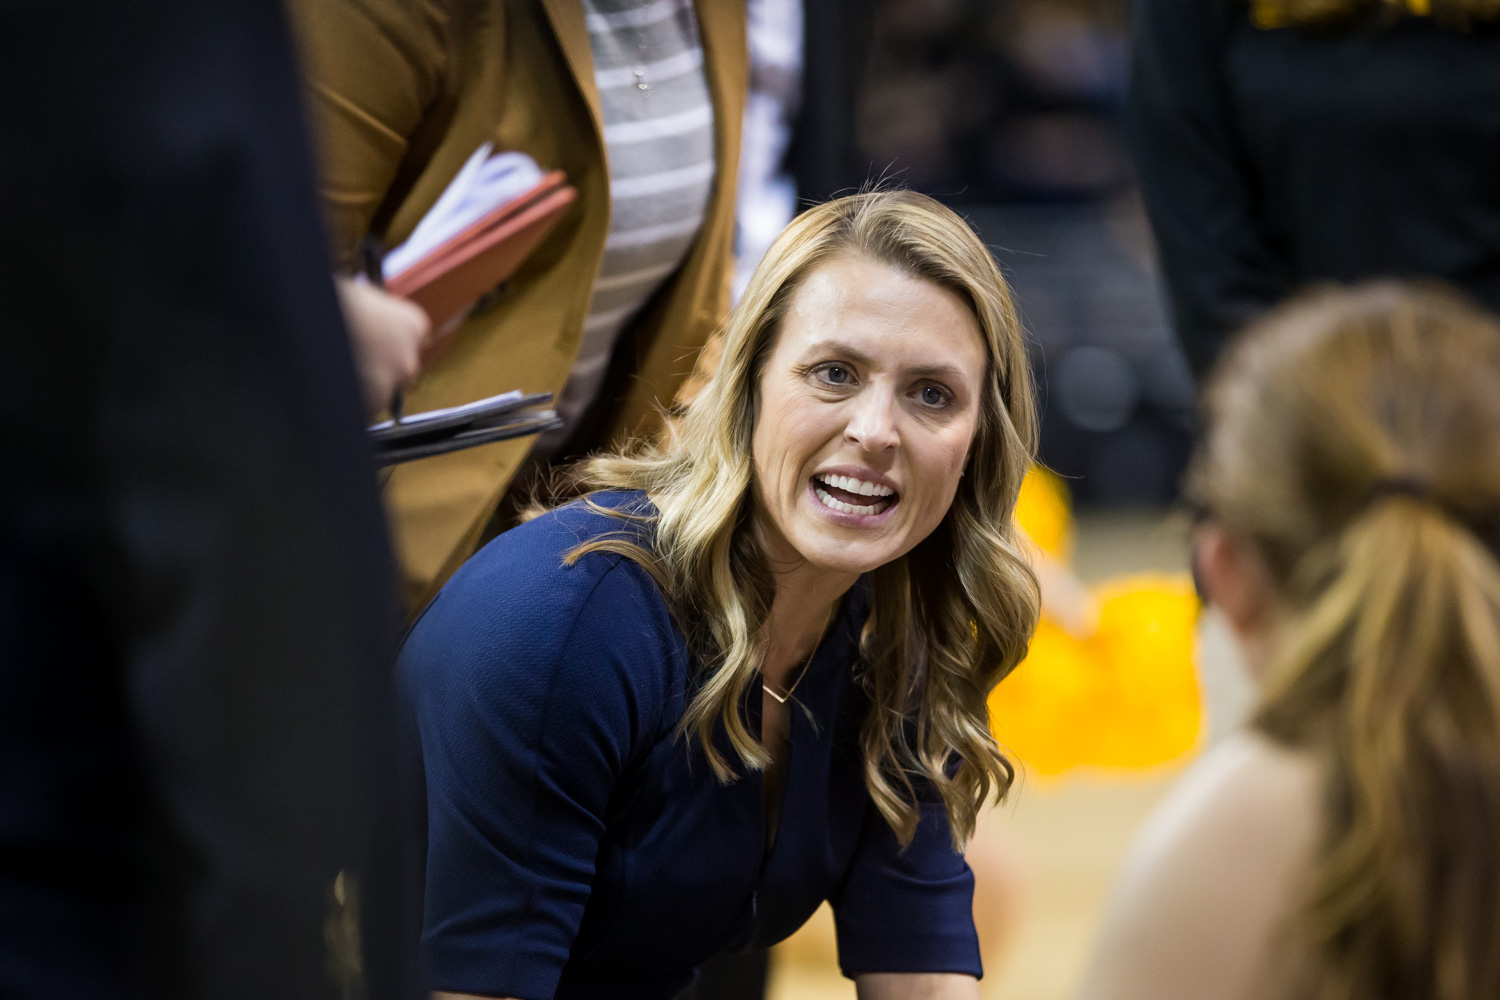 External review finds abuse allegations against WBB coach 'unfounded'